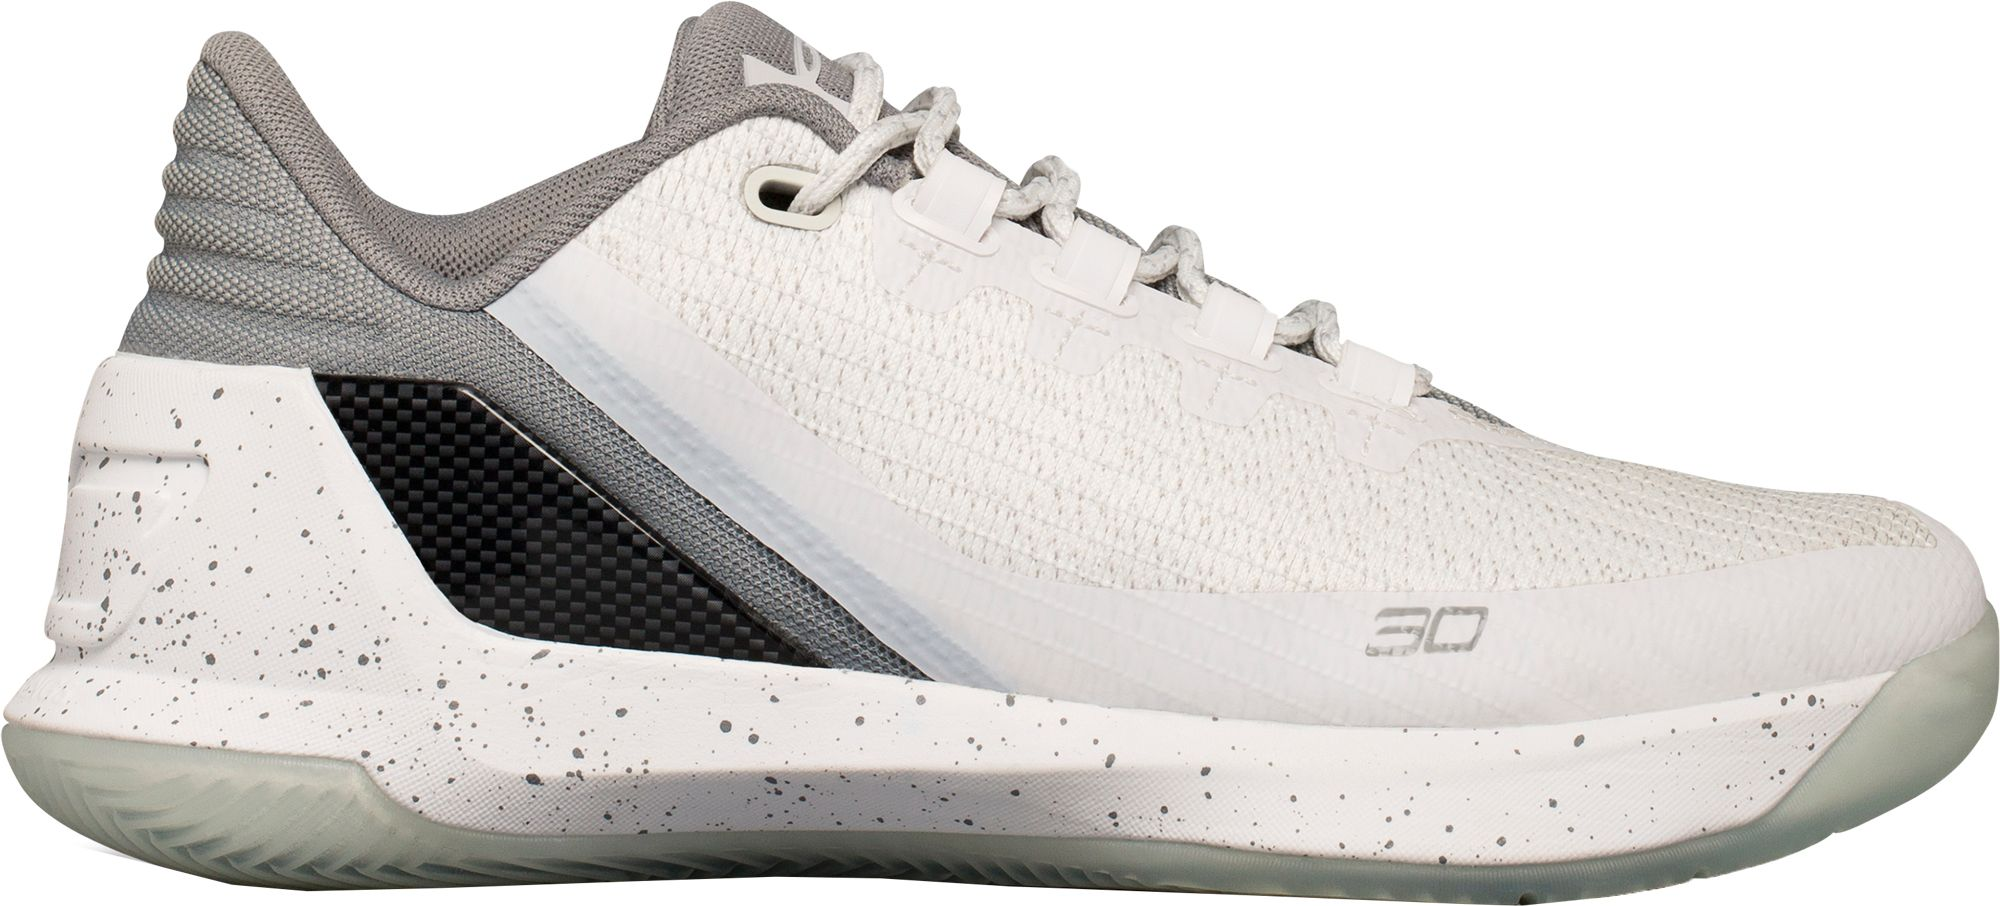 ab08eb58590 ... low price under armour kids grade school curry 3 low basketball shoes .